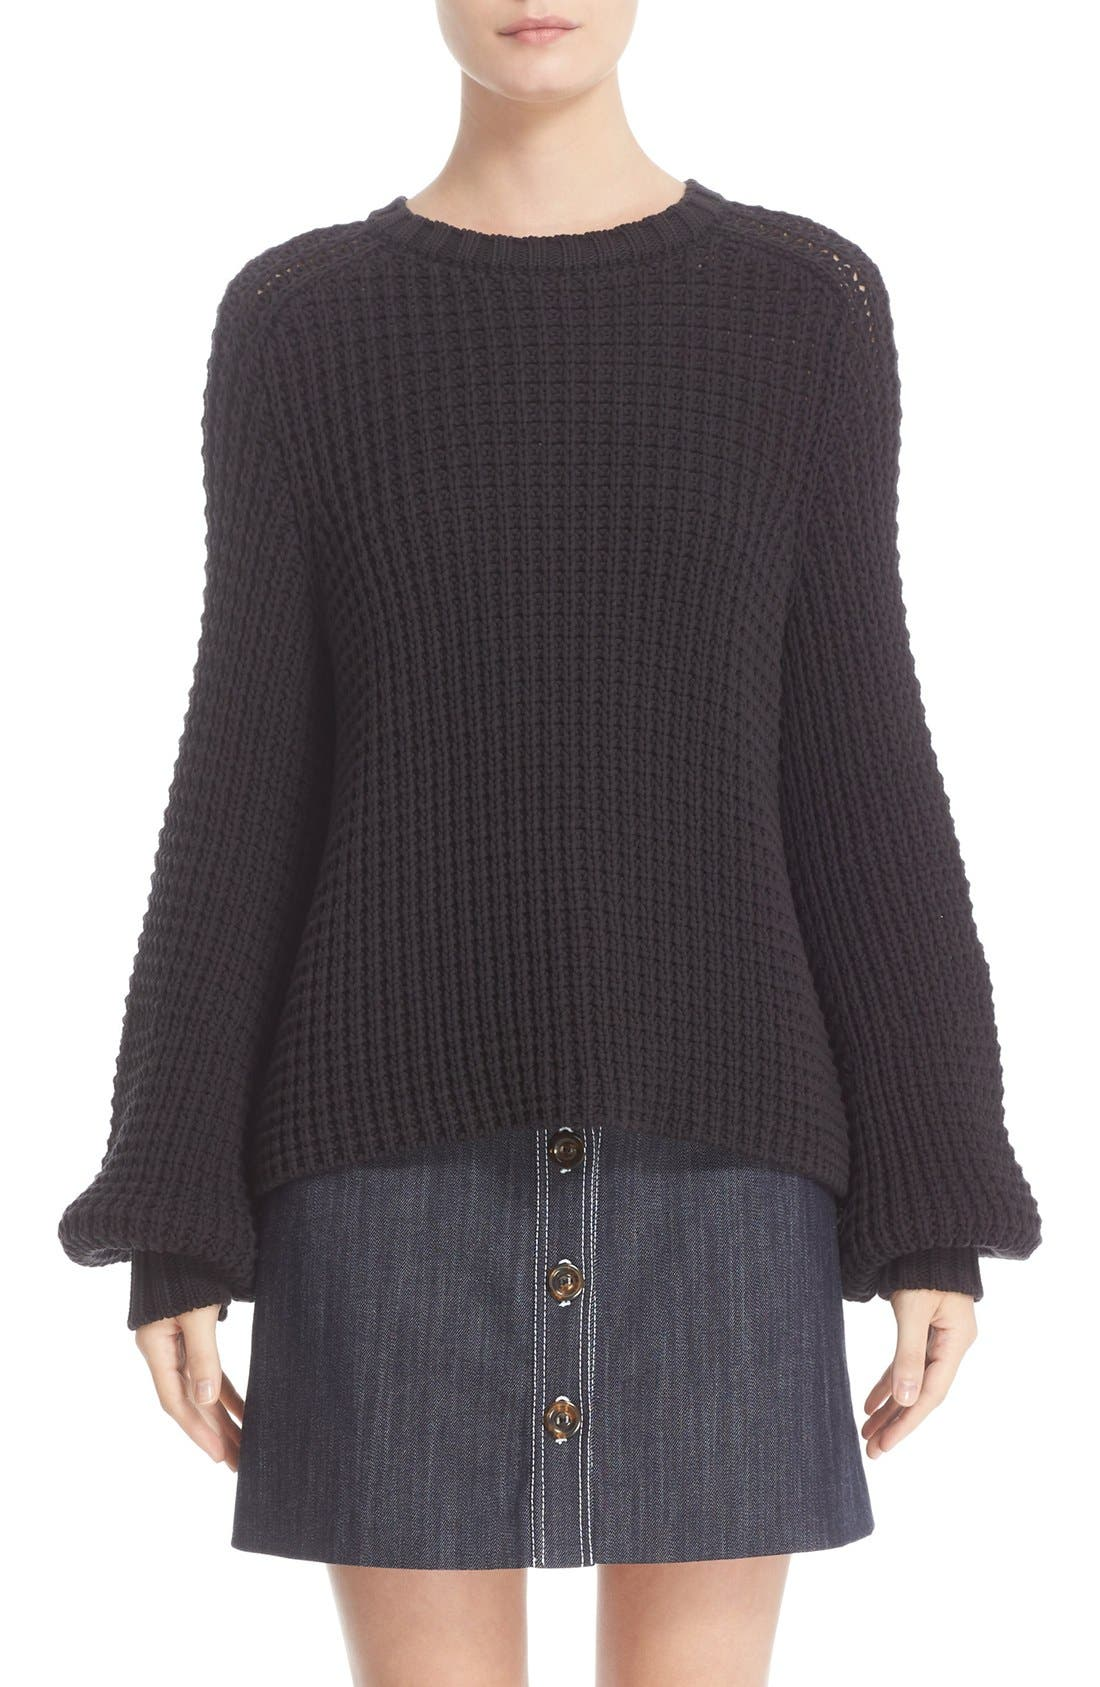 ADAM LIPPES Cotton Blend Knit Sweater